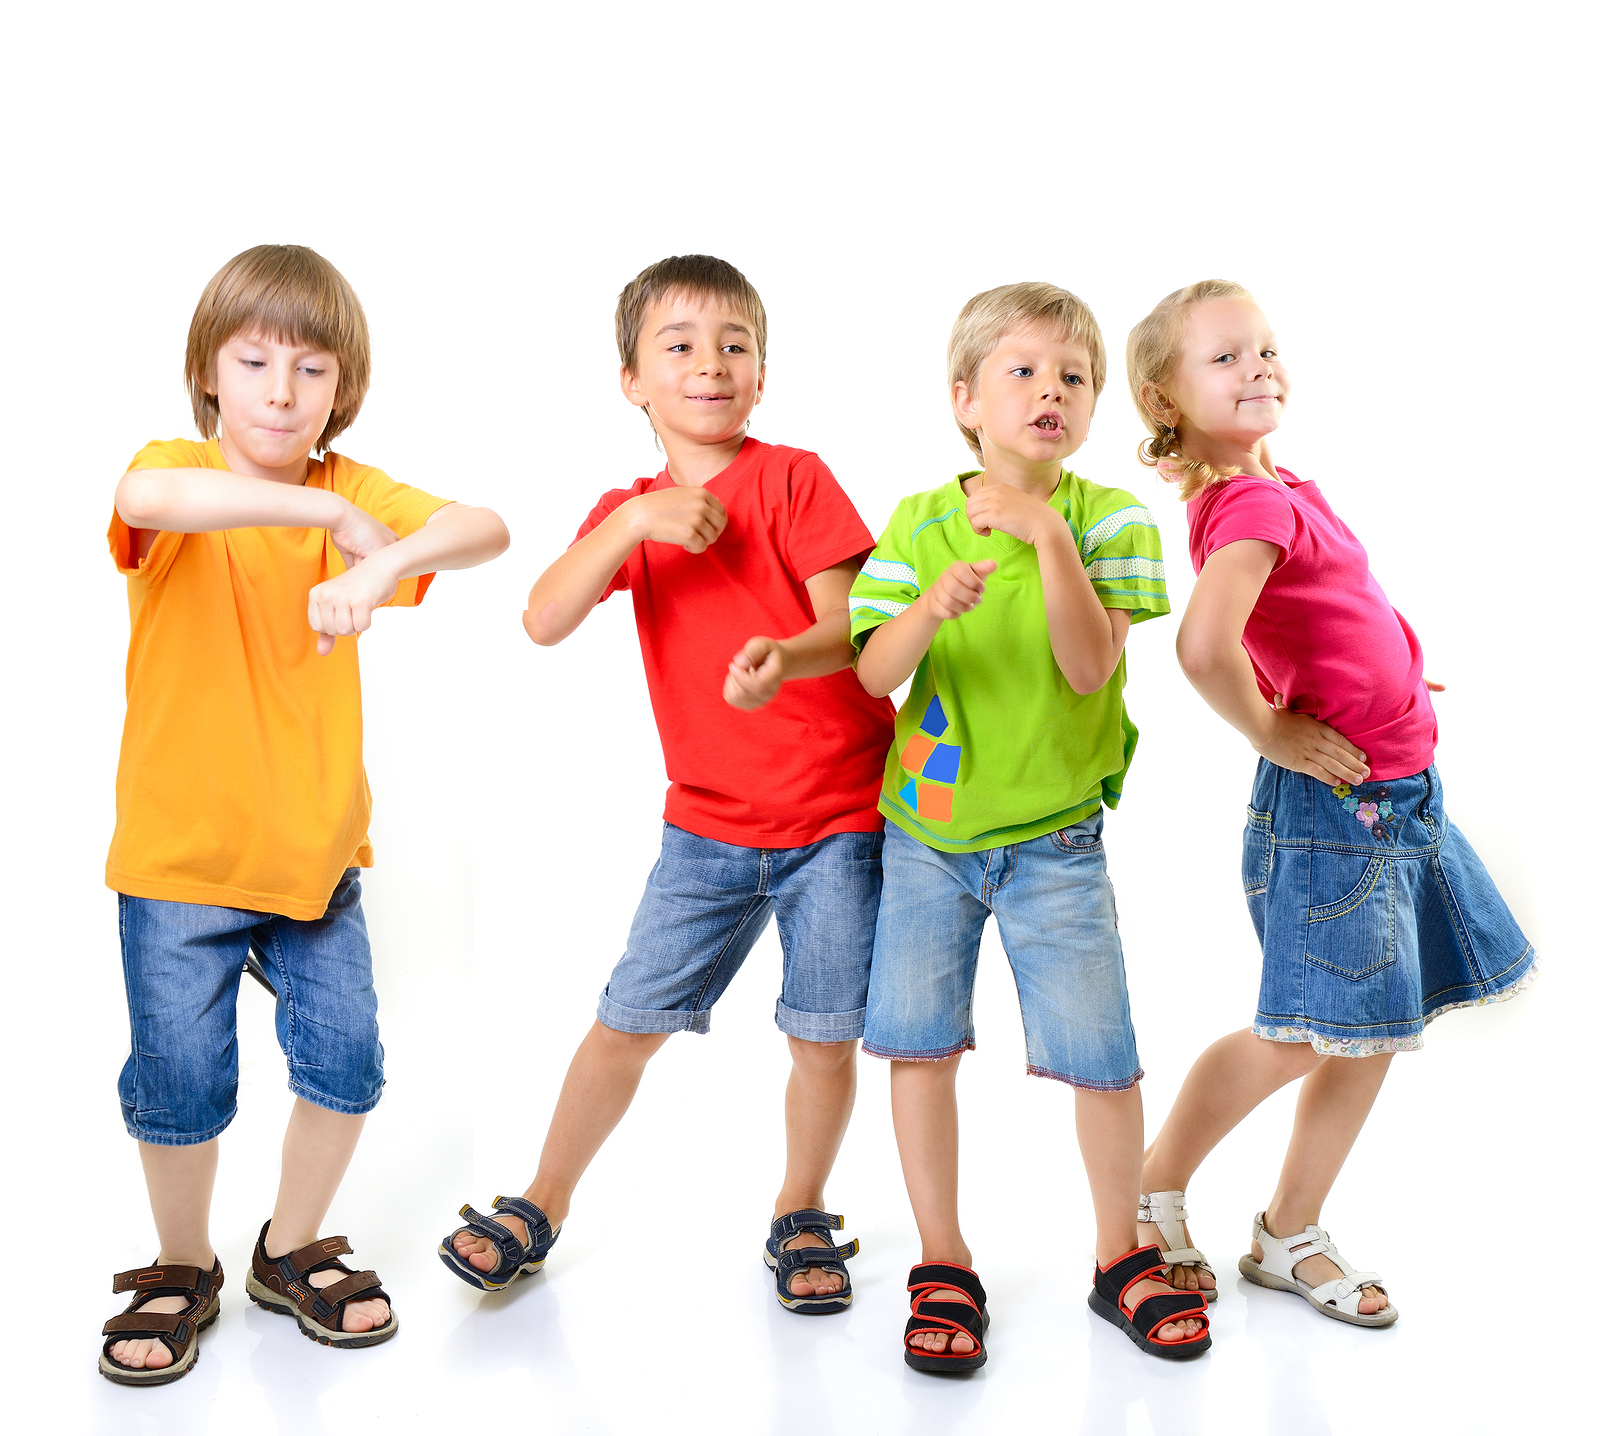 bigstock-happy-children-dancing-on-a-wh-46523527